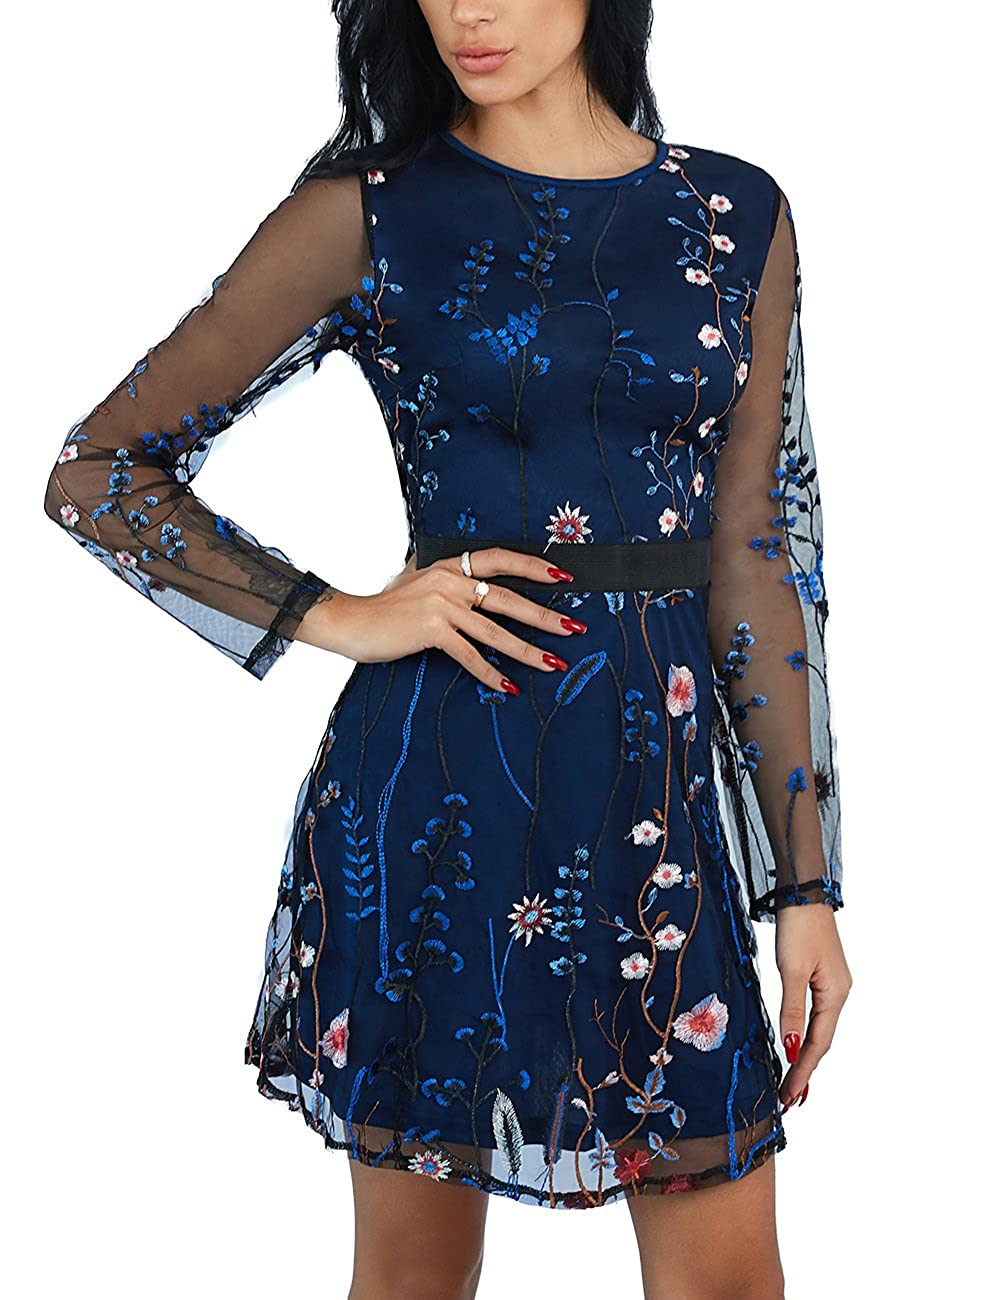 86c3c04bbd5 Ivrose Womens Floral Embroidery Casual Mesh Dress at Amazon Women s  Clothing store